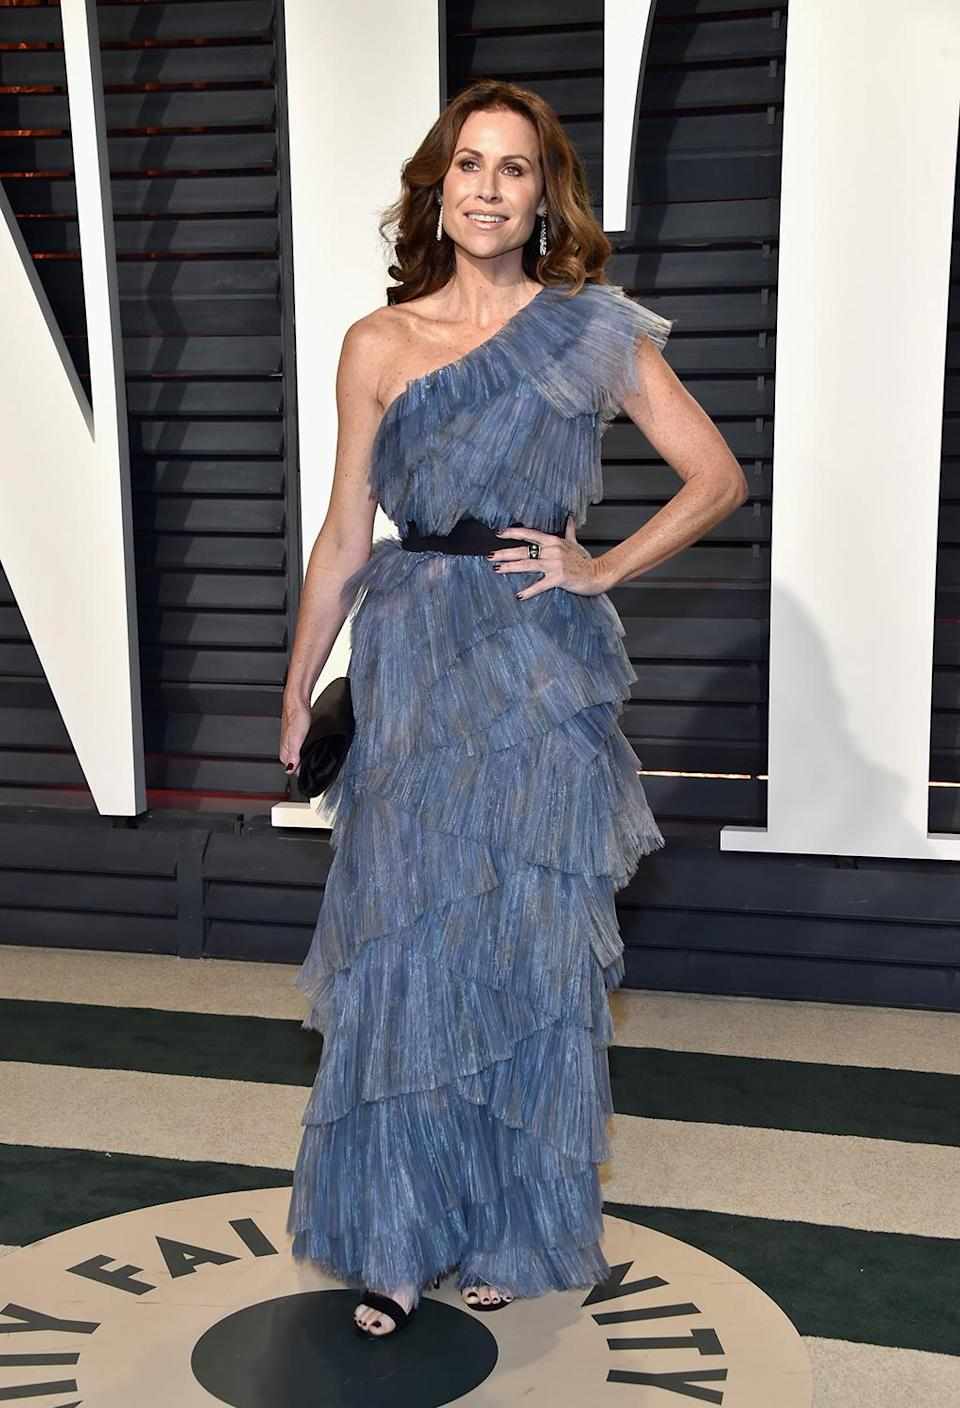 <p>Minnie Driver attends the 2017 Vanity Fair Oscar Party hosted by Graydon Carter at Wallis Annenberg Center for the Performing Arts on February 26, 2017 in Beverly Hills, California. (Photo by Pascal Le Segretain/Getty Images) </p>